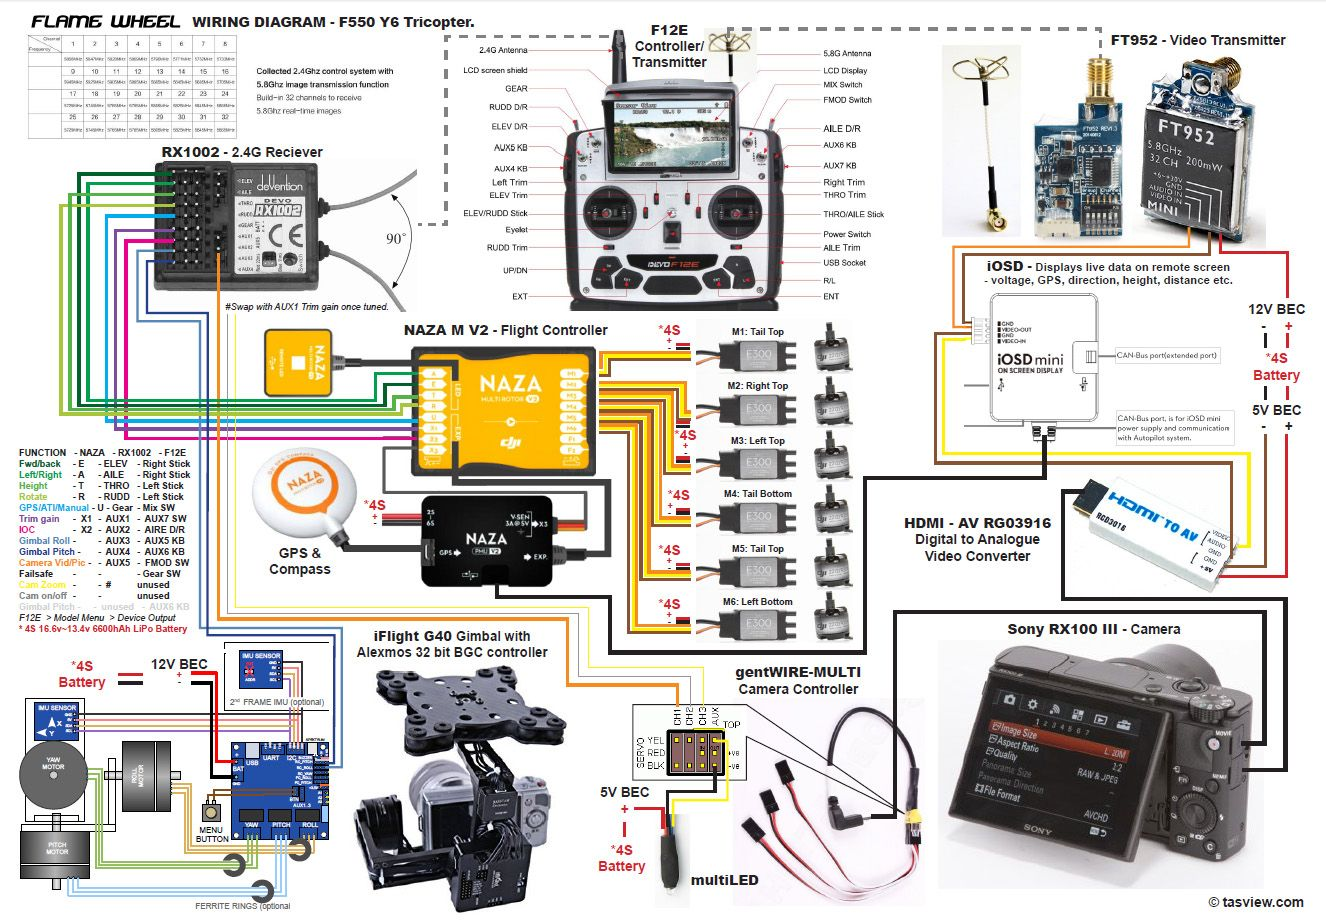 93A7C5 Mf40 Tractor Ignition Switch Wiring Diagram | Digital Resources3.7.3.3.1.3.4.4.2.6.9.dba.skylink.hr